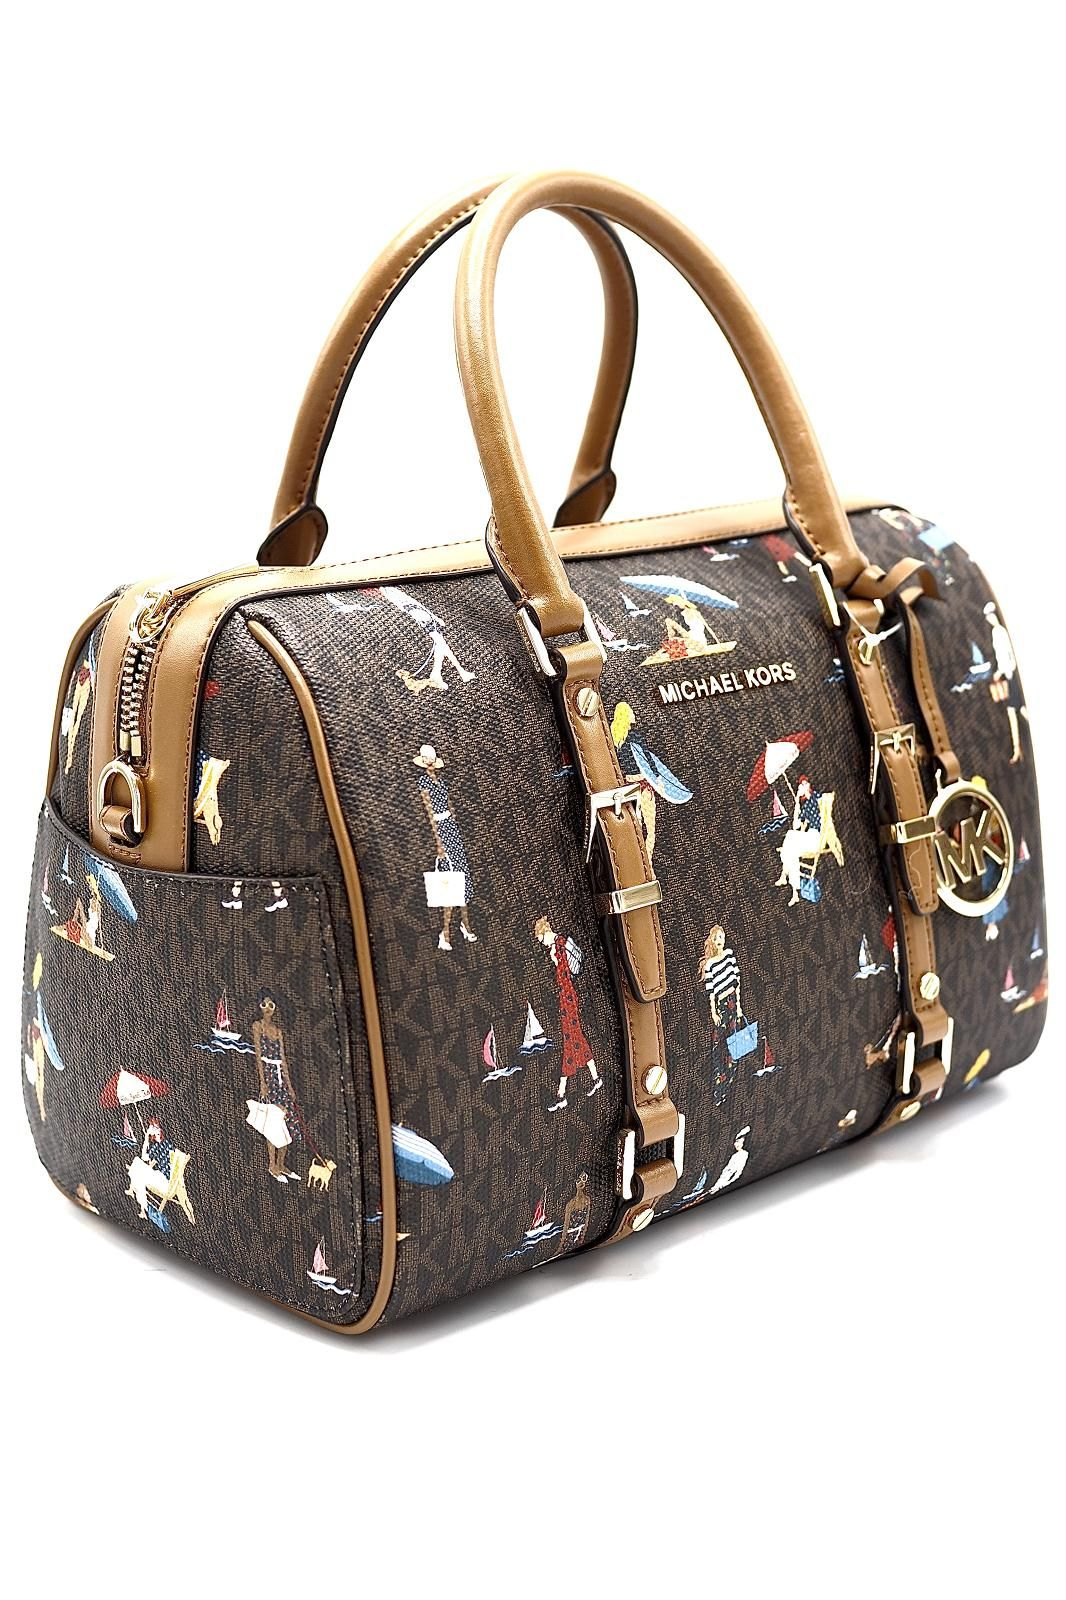 Michael Kors Accessoires sac Brun-multi femmes (MKB-Sac week end - S0048996212 sac weekend logos) - Marine | Much more than shoes